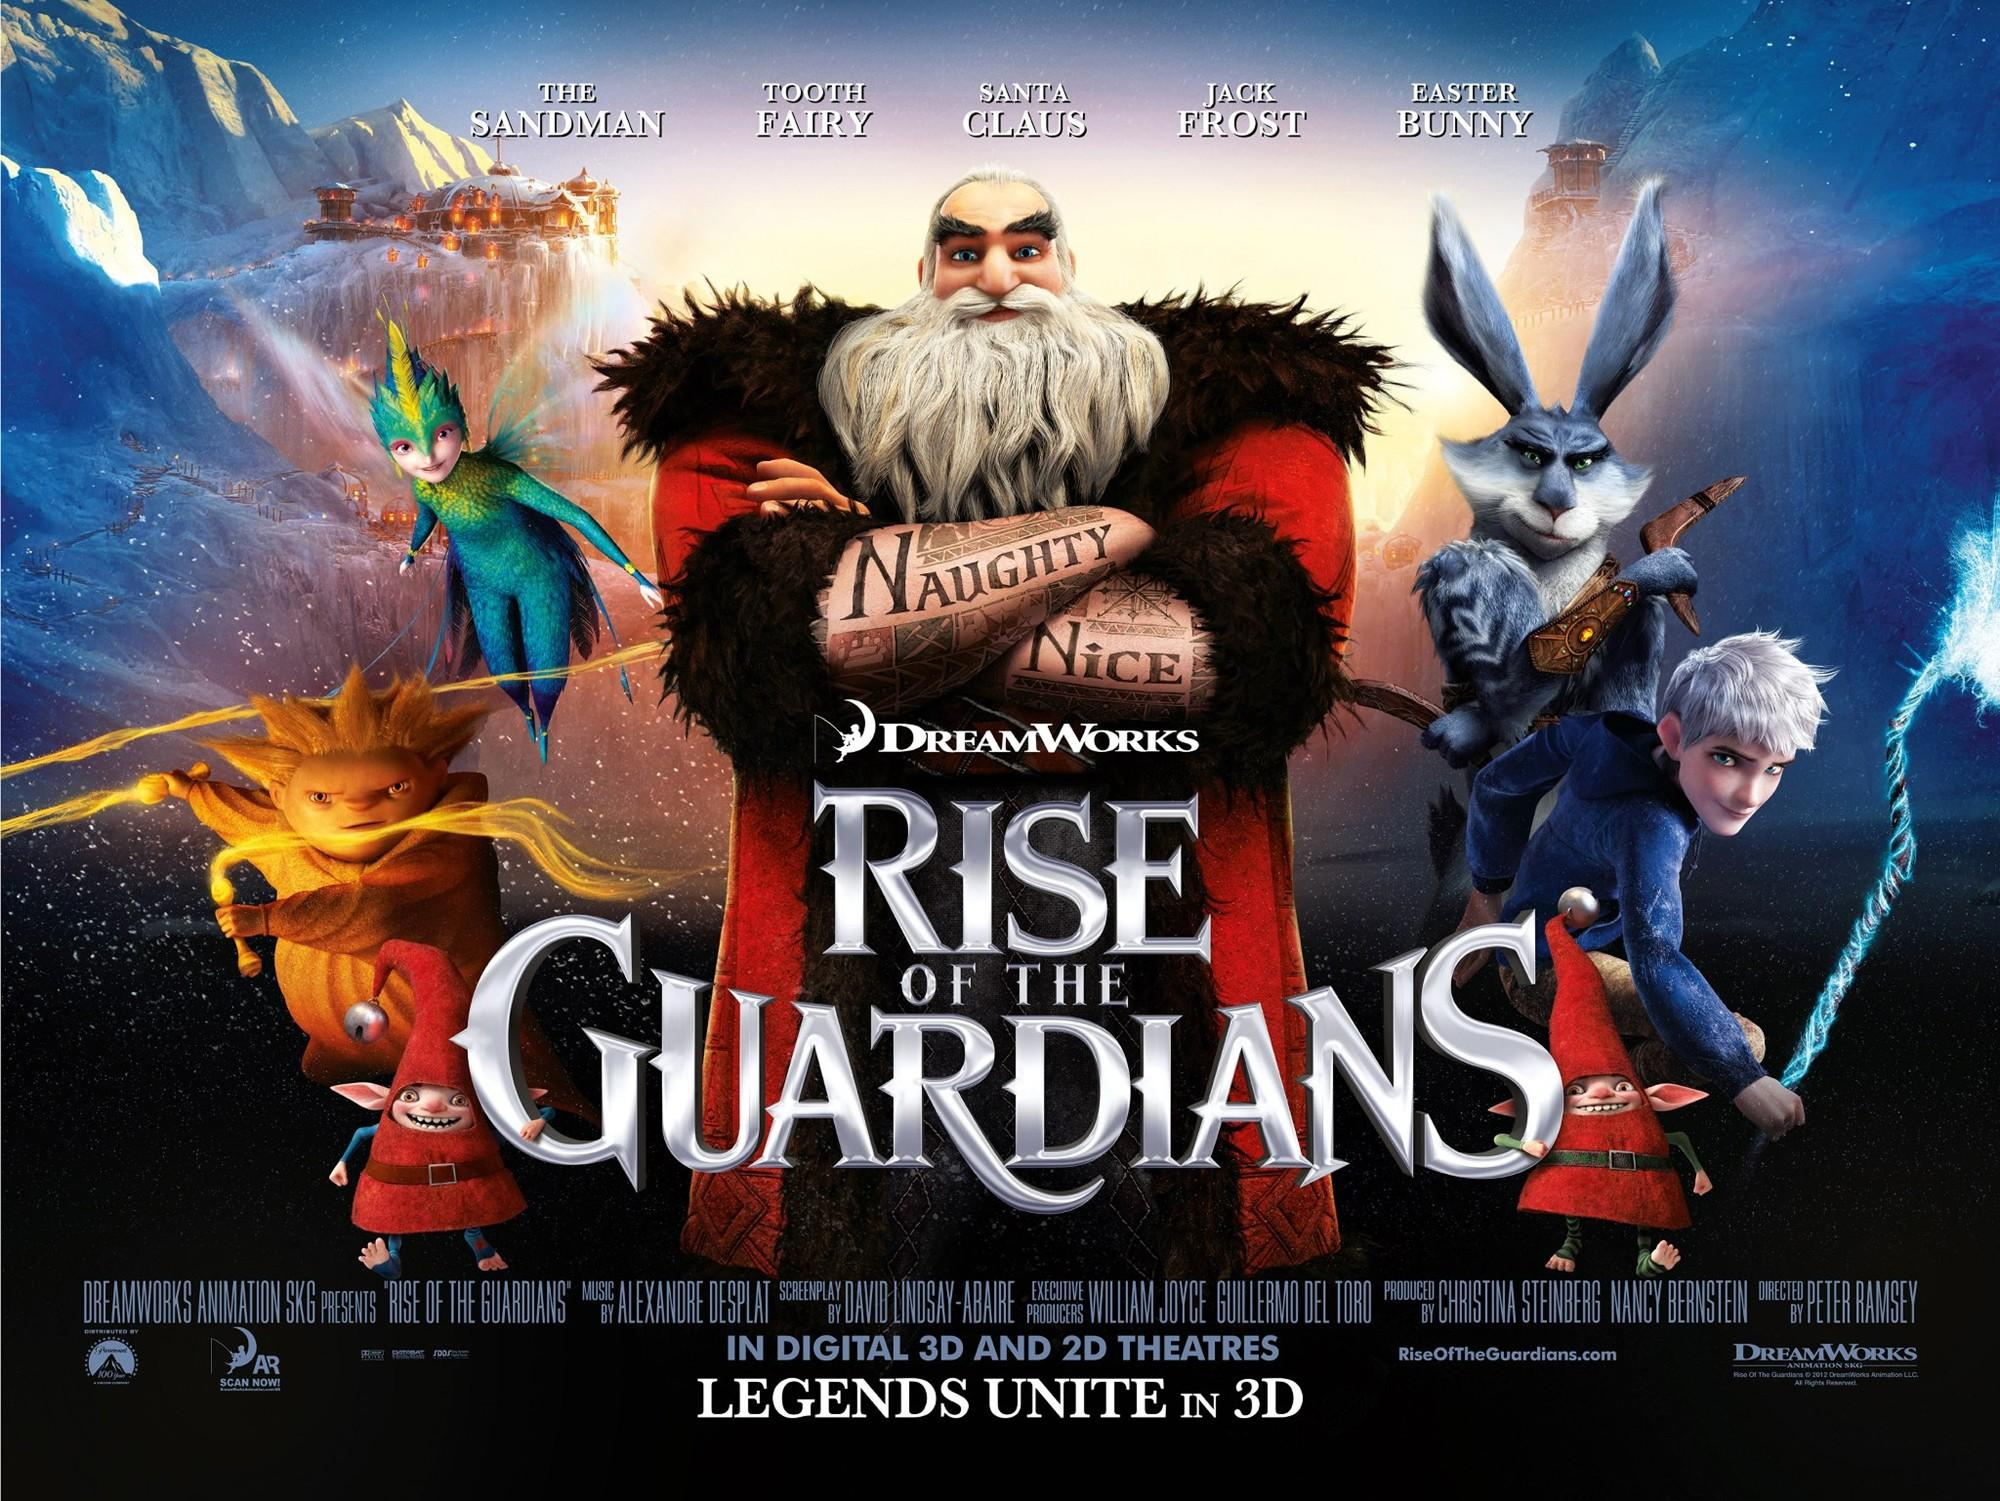 rise-of-the-guardians-poster04.jpg